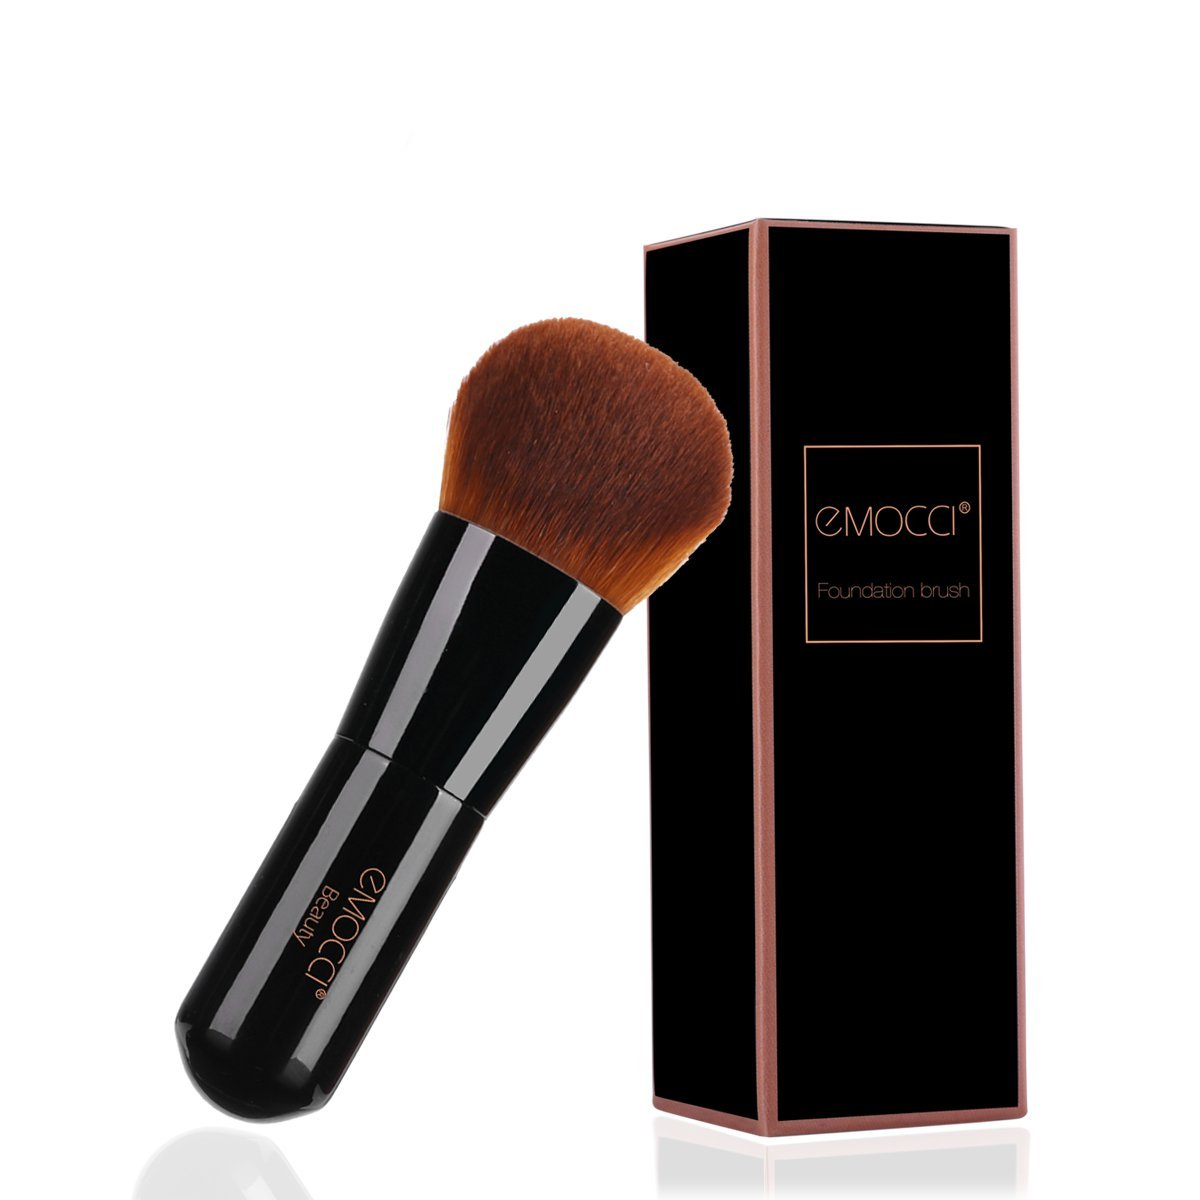 Flat Makeup Kabuki Brush Professional Make Up Face Foundation Stippling Concealer Brushes for Liquid Powder BB Cream Blending Mineral Beauty Tools Gift Set(Black)